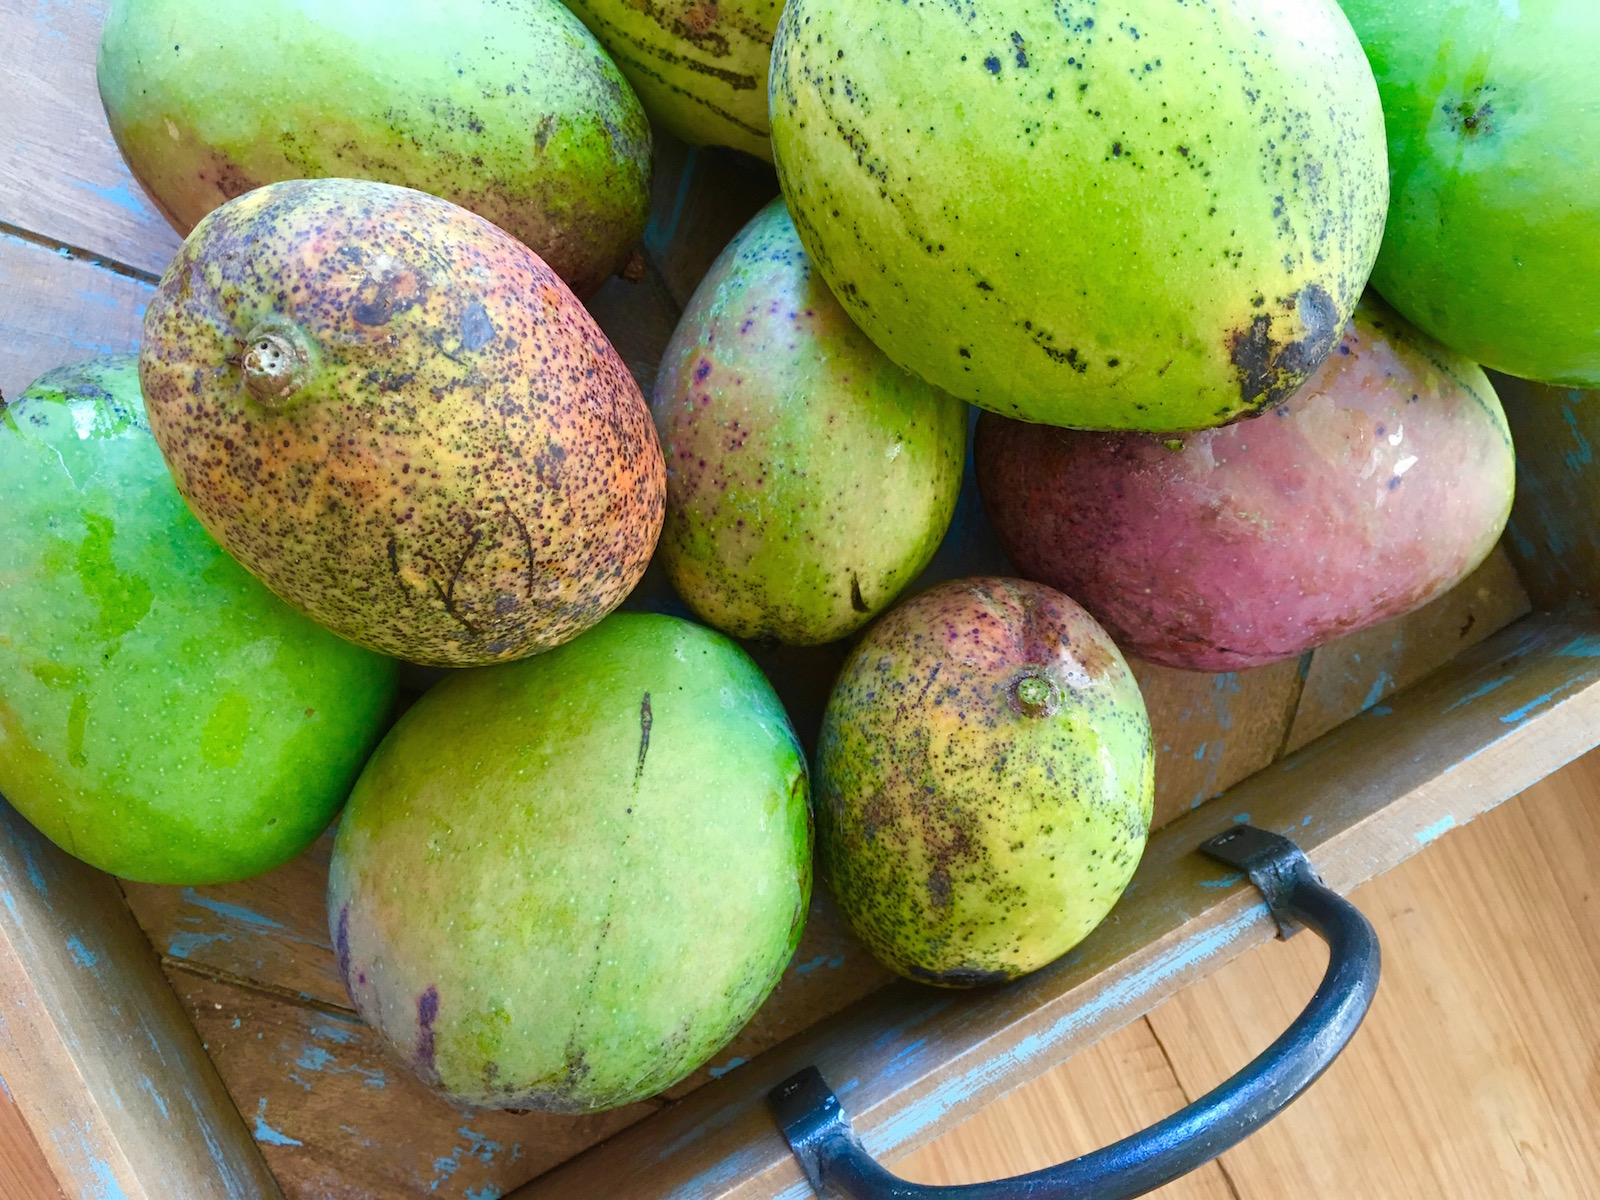 Fresh Florida Mangoes